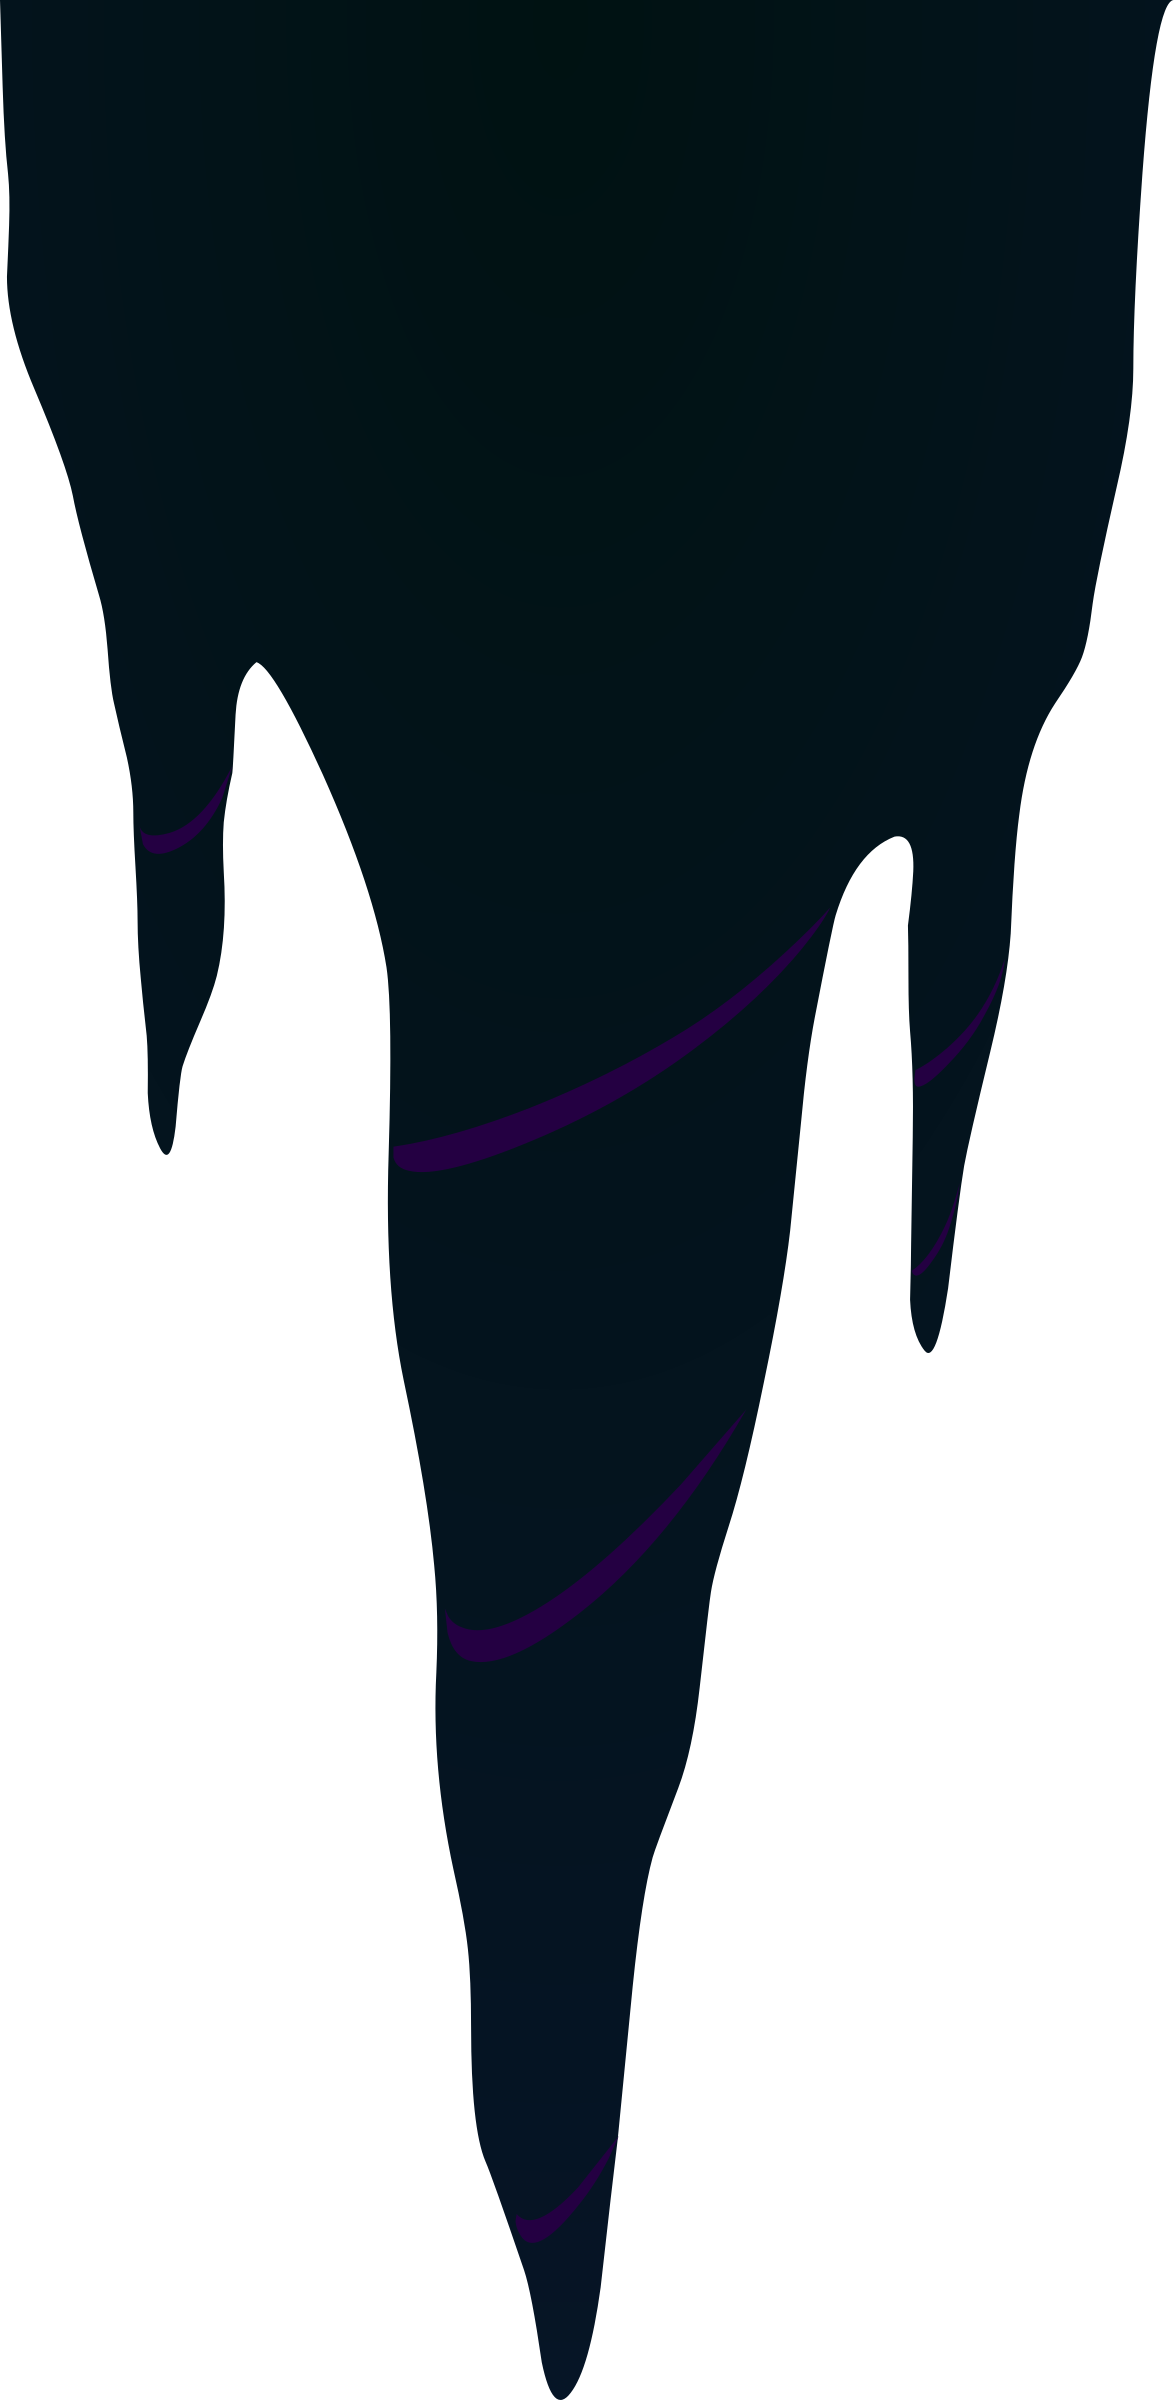 Silhouette at getdrawings com. Family clipart cave